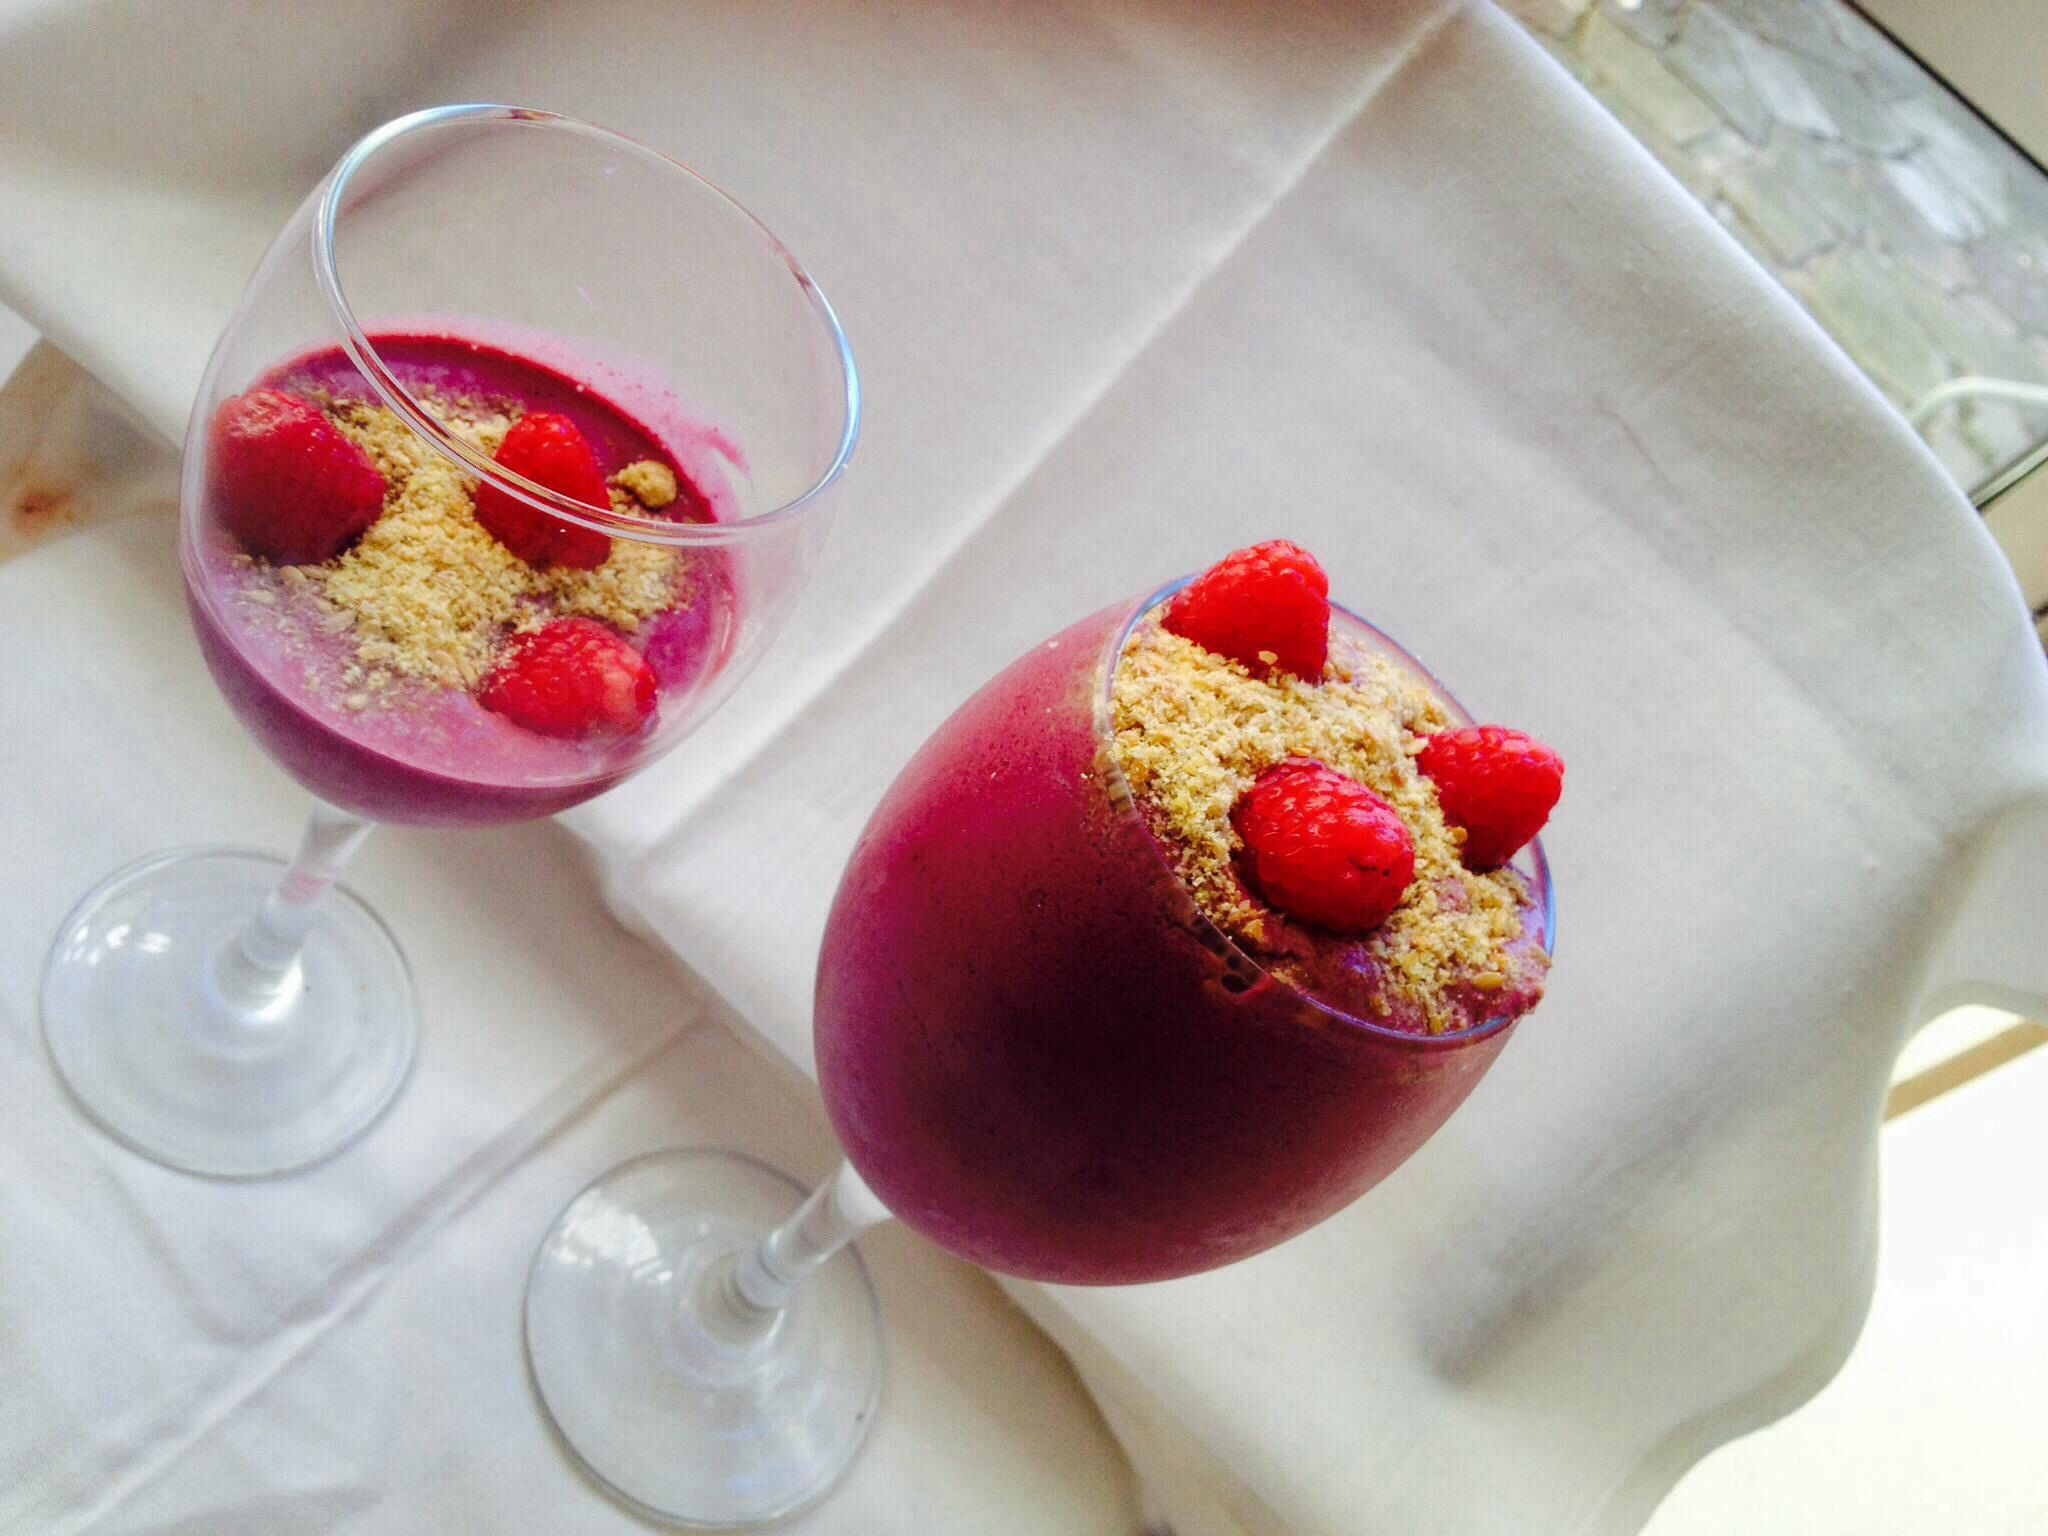 Strawberry smoothie topped with ground flaxseed